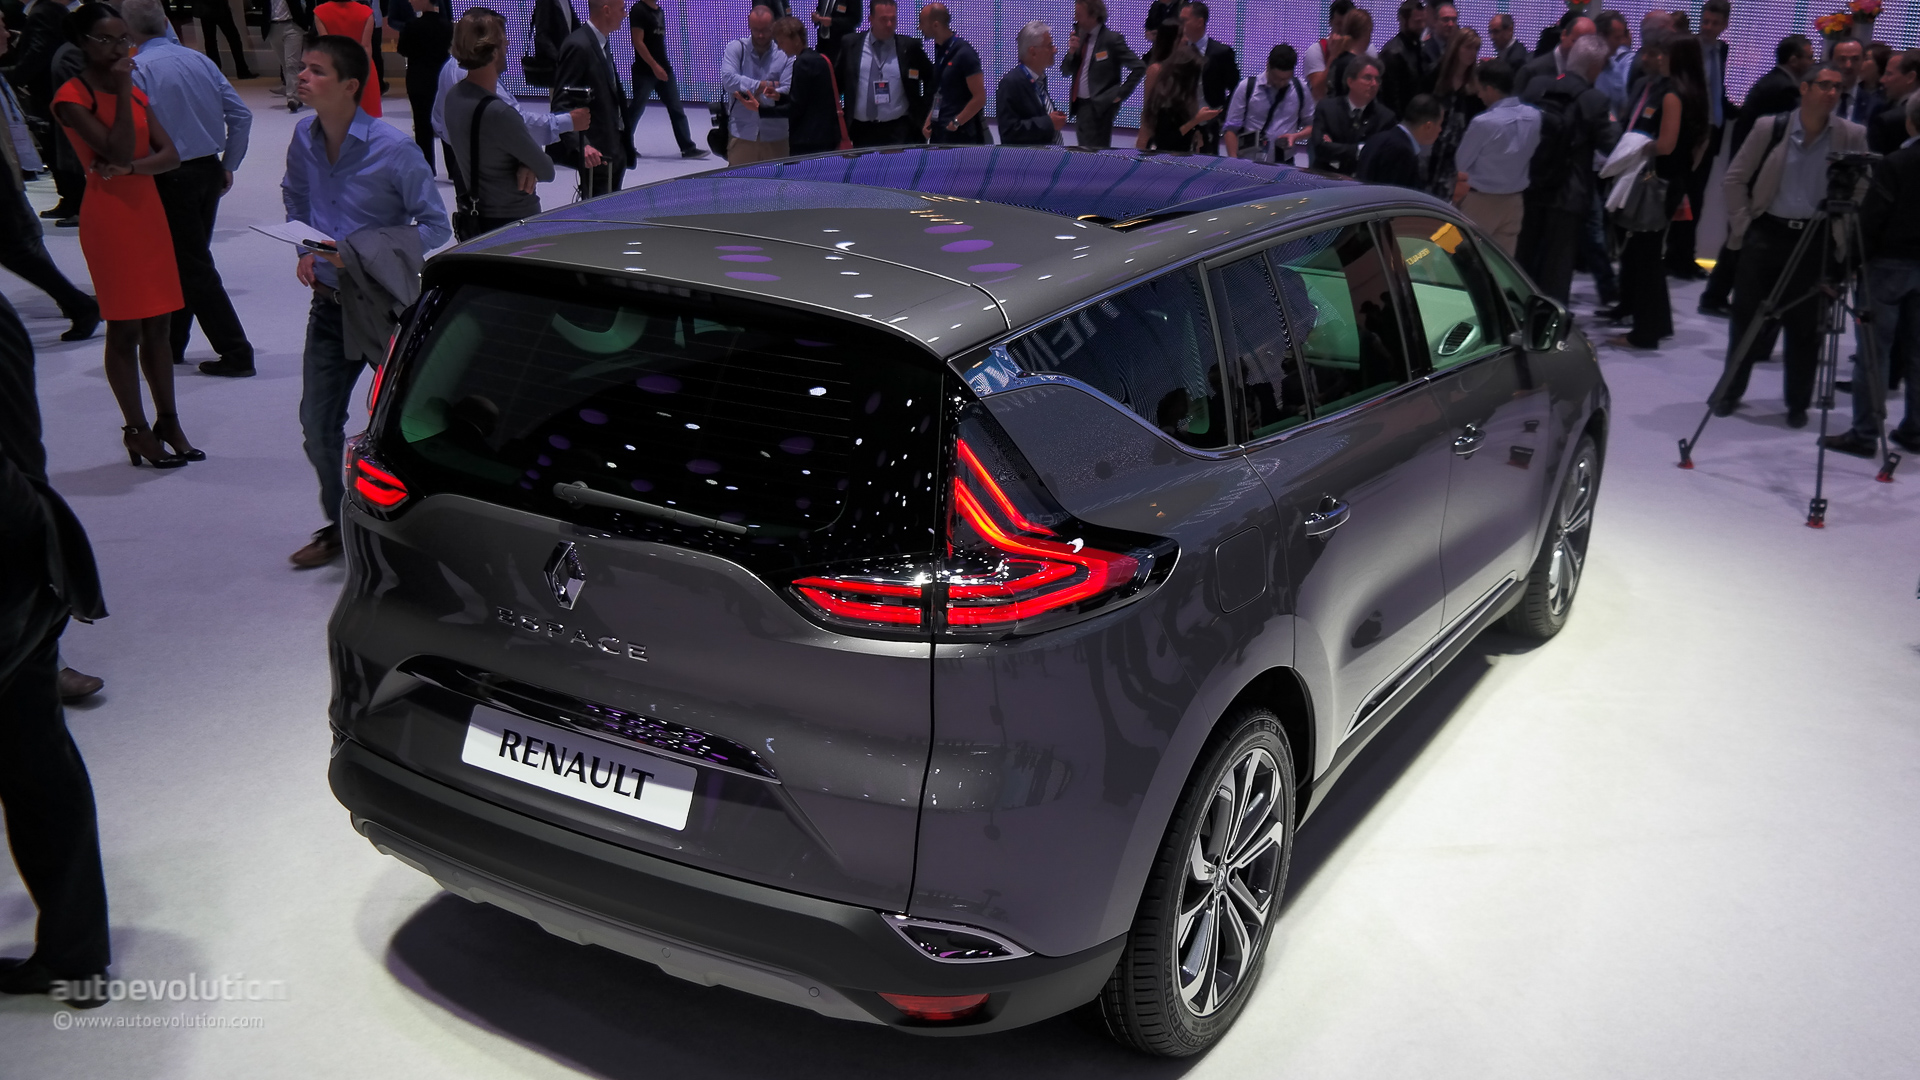 2015 Renault Espace Has a Clio RS 200 Horsepower Engine Live Photos  autoevolution